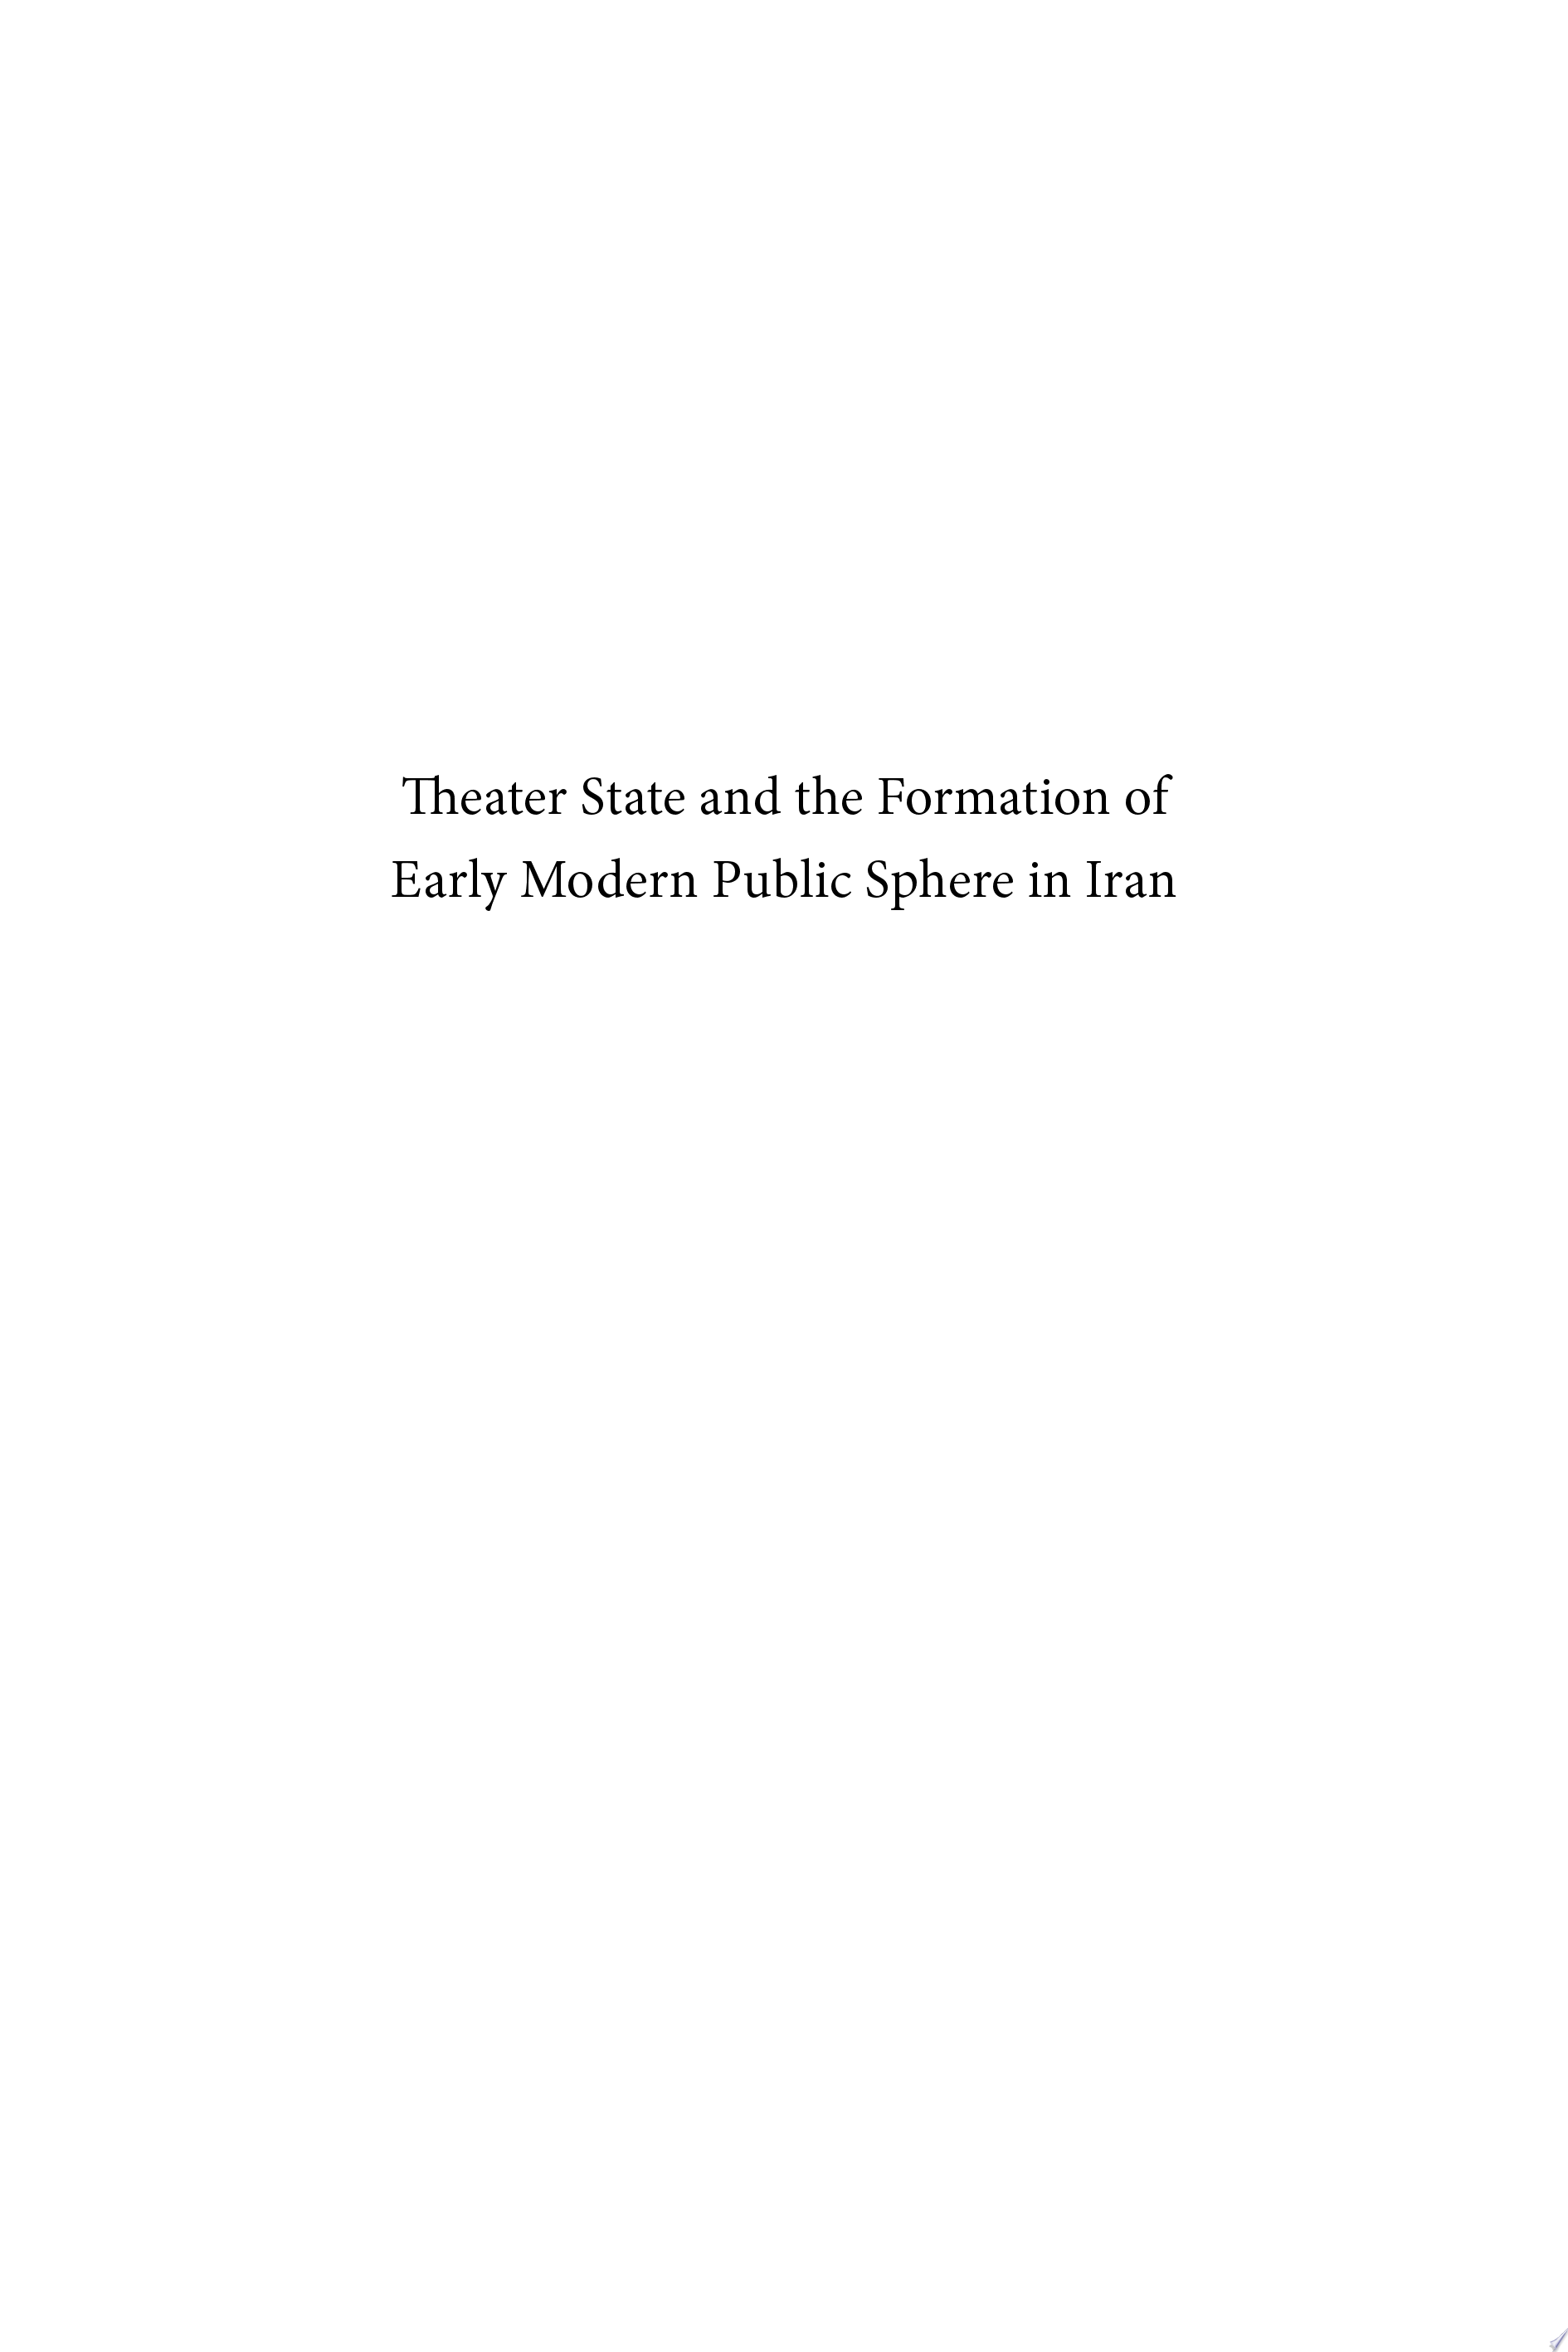 Theater State and the Formation of Early Modern Public Sphere in Iran